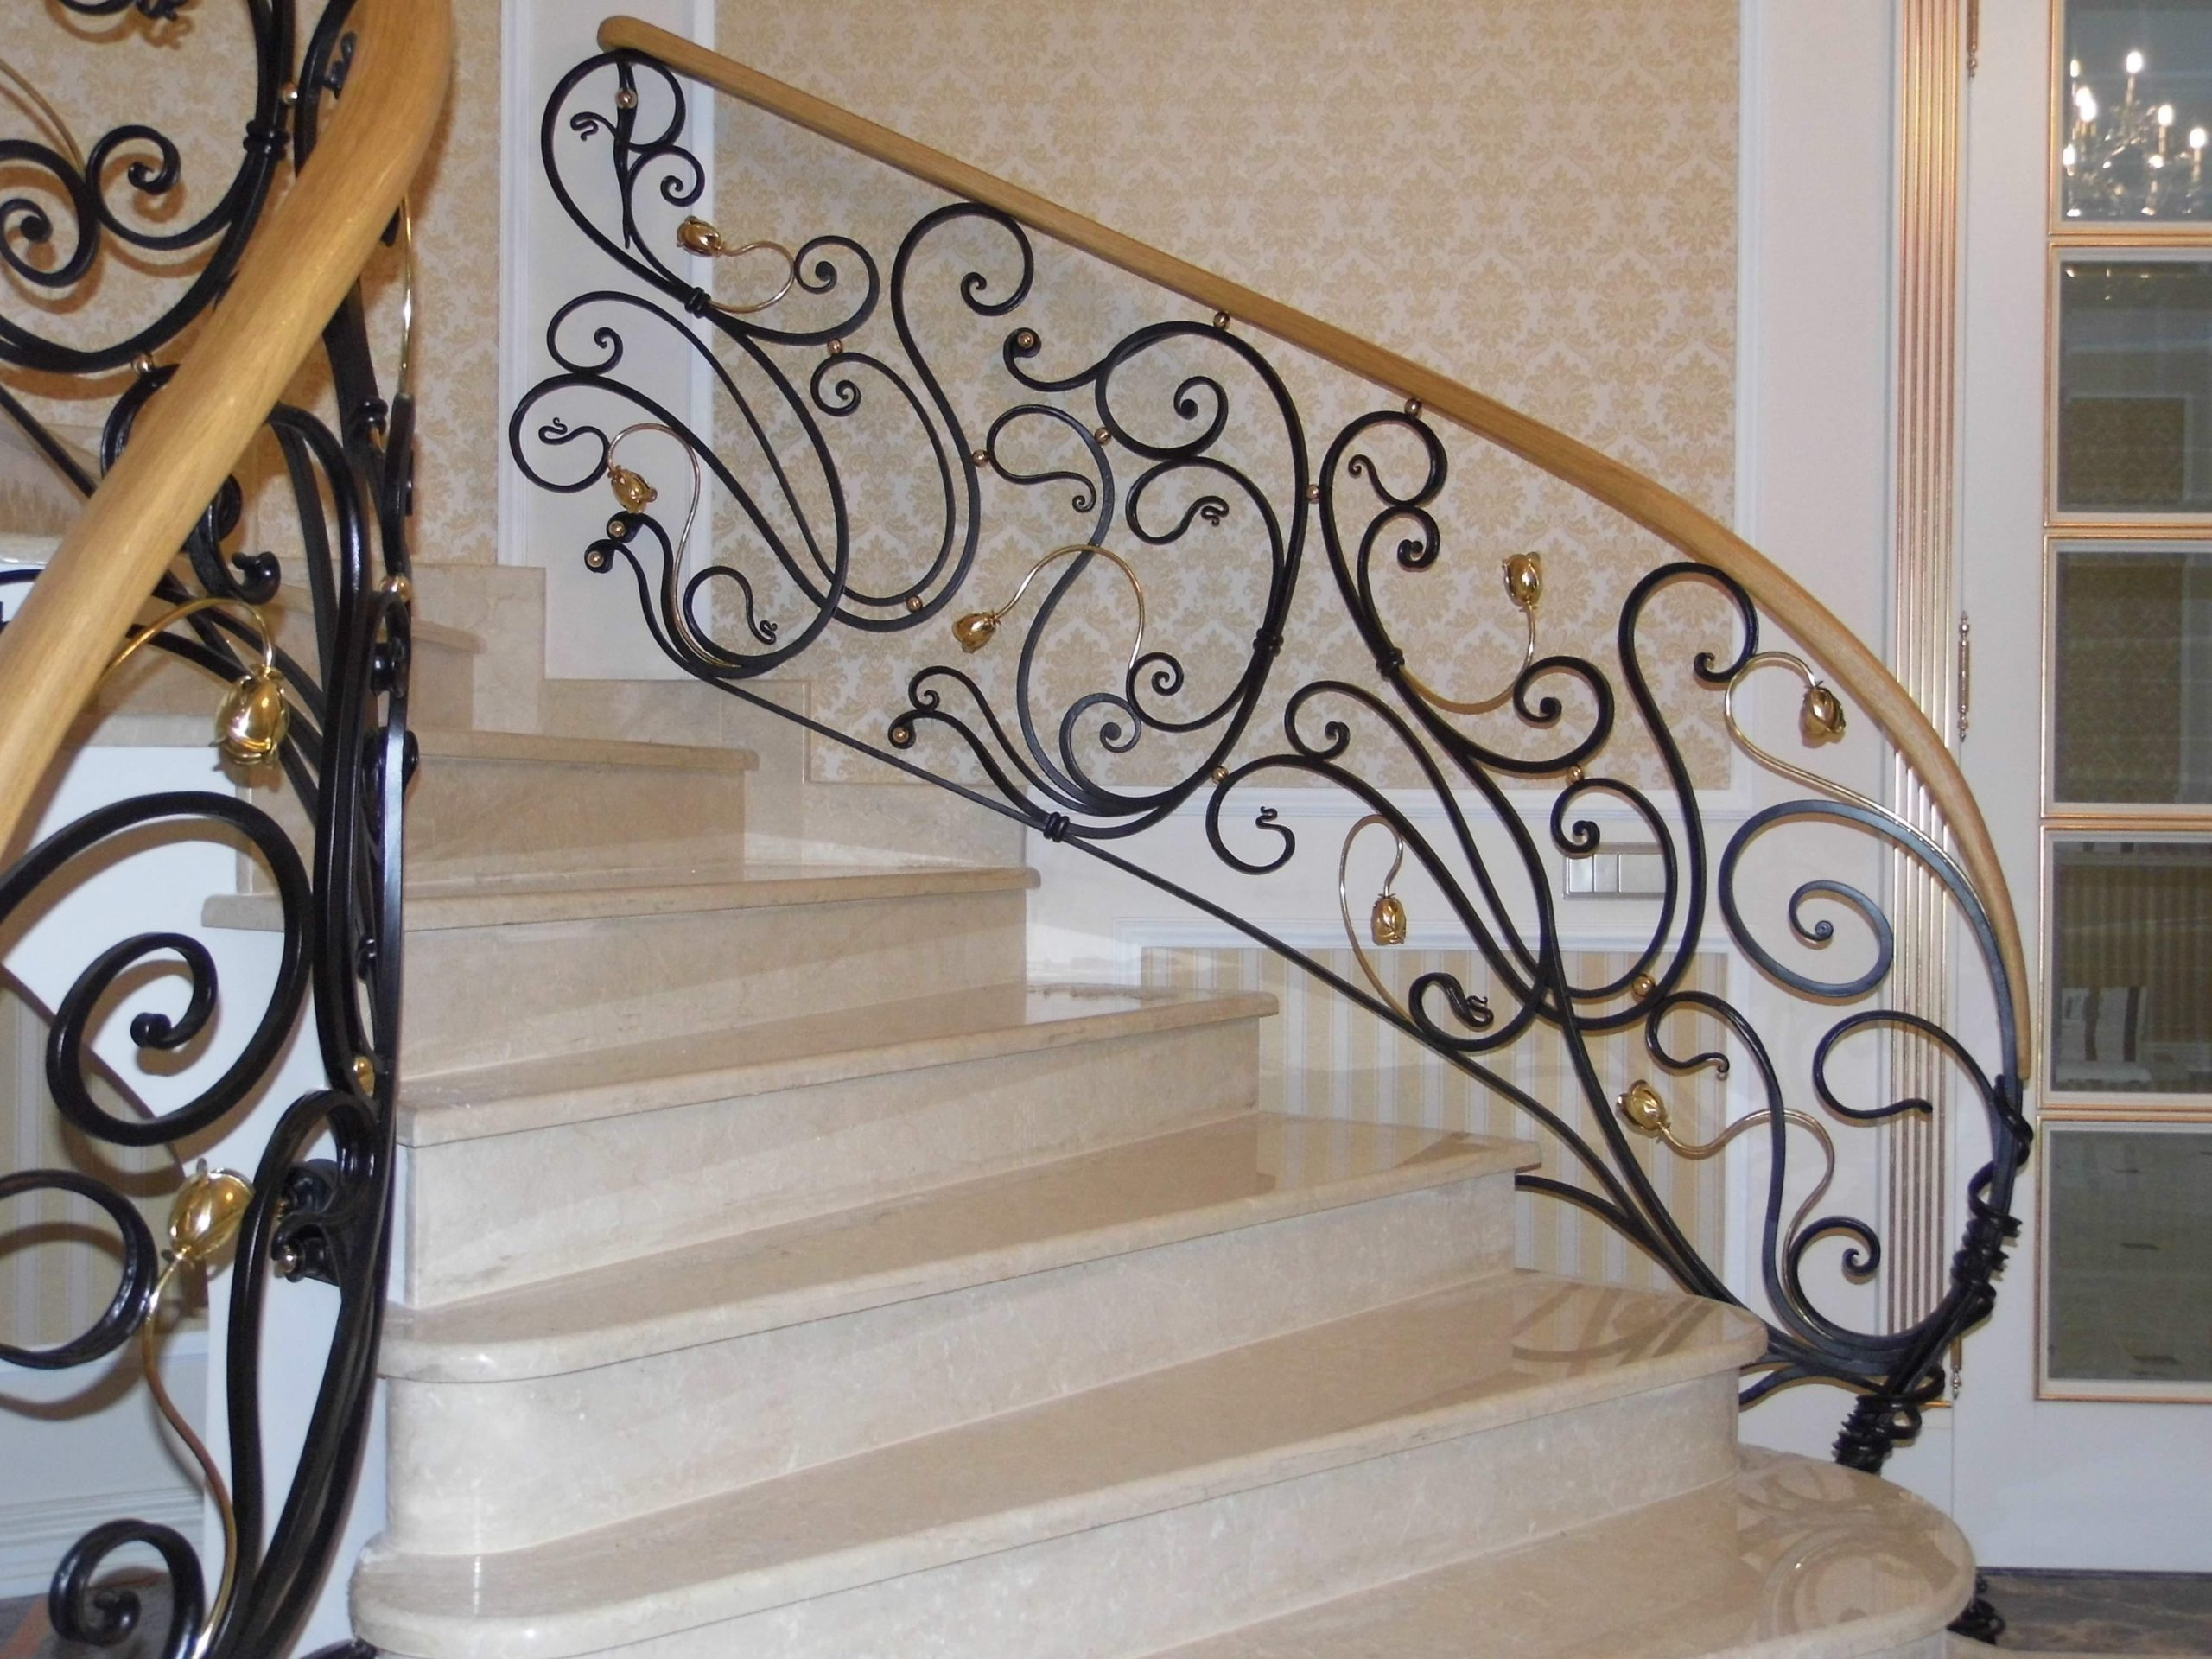 Special staircase in Brussels